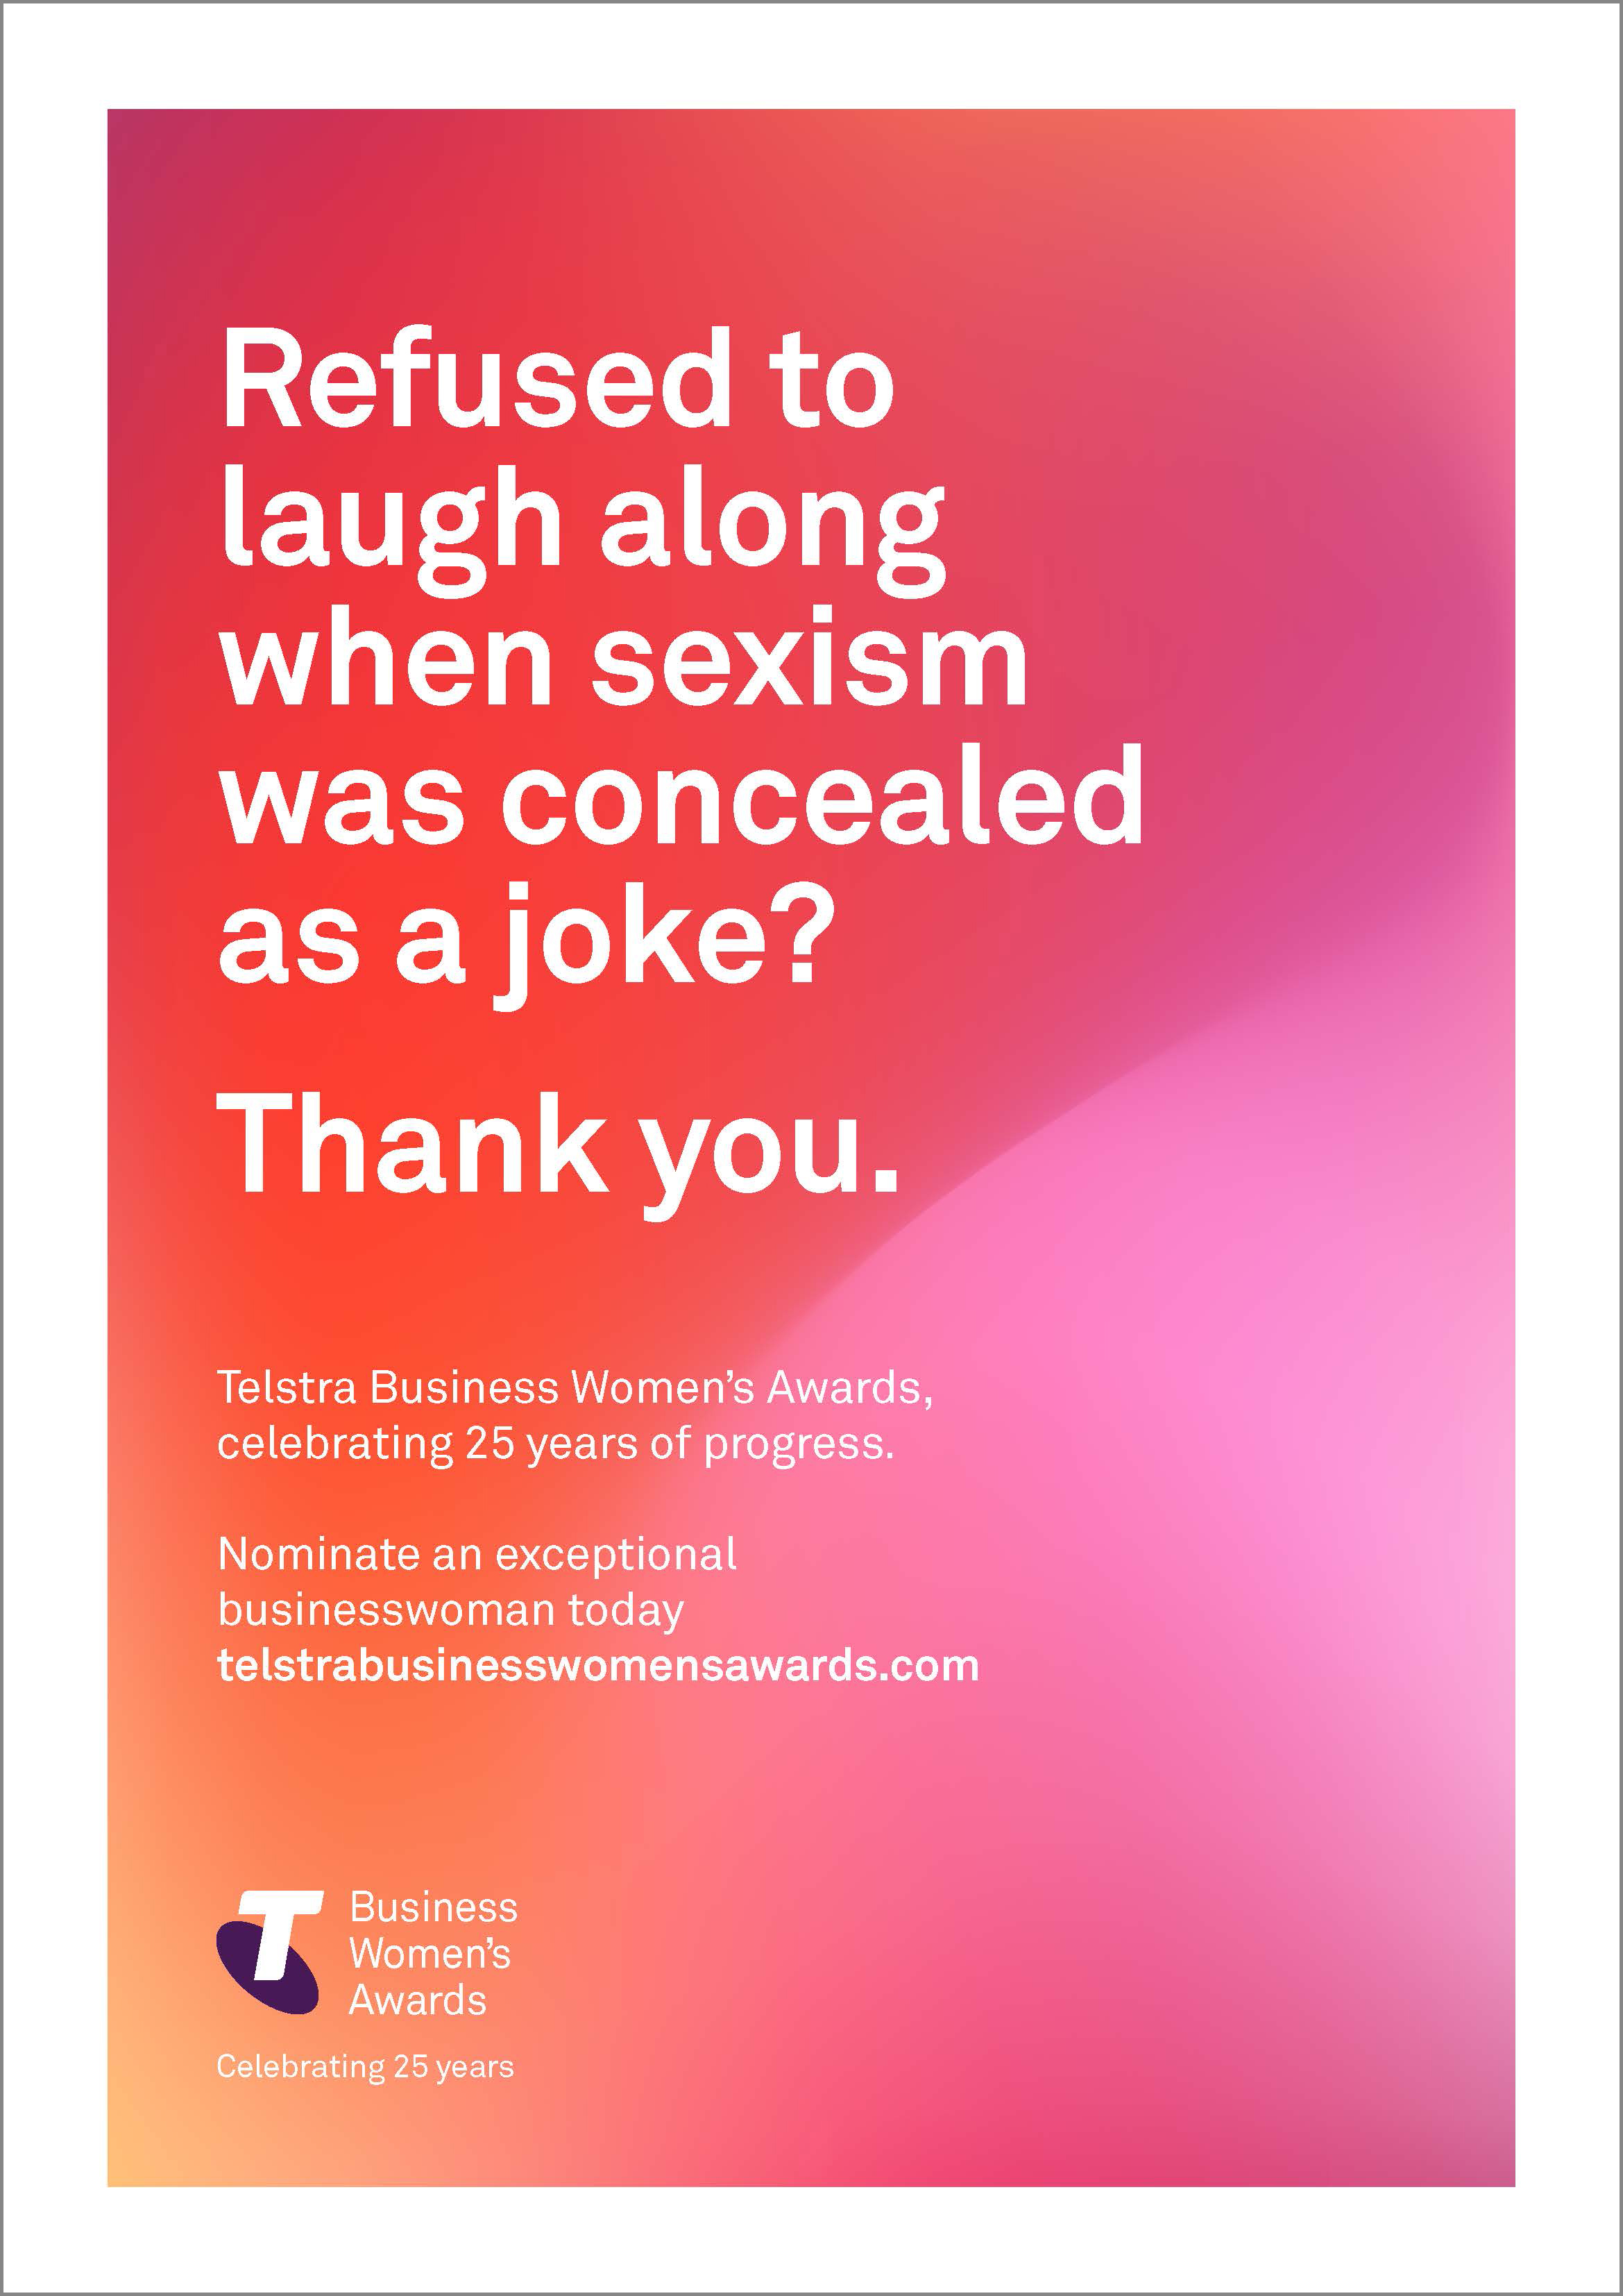 Telstra thanks women who have helped business progress in latest campaign via The Monkeys